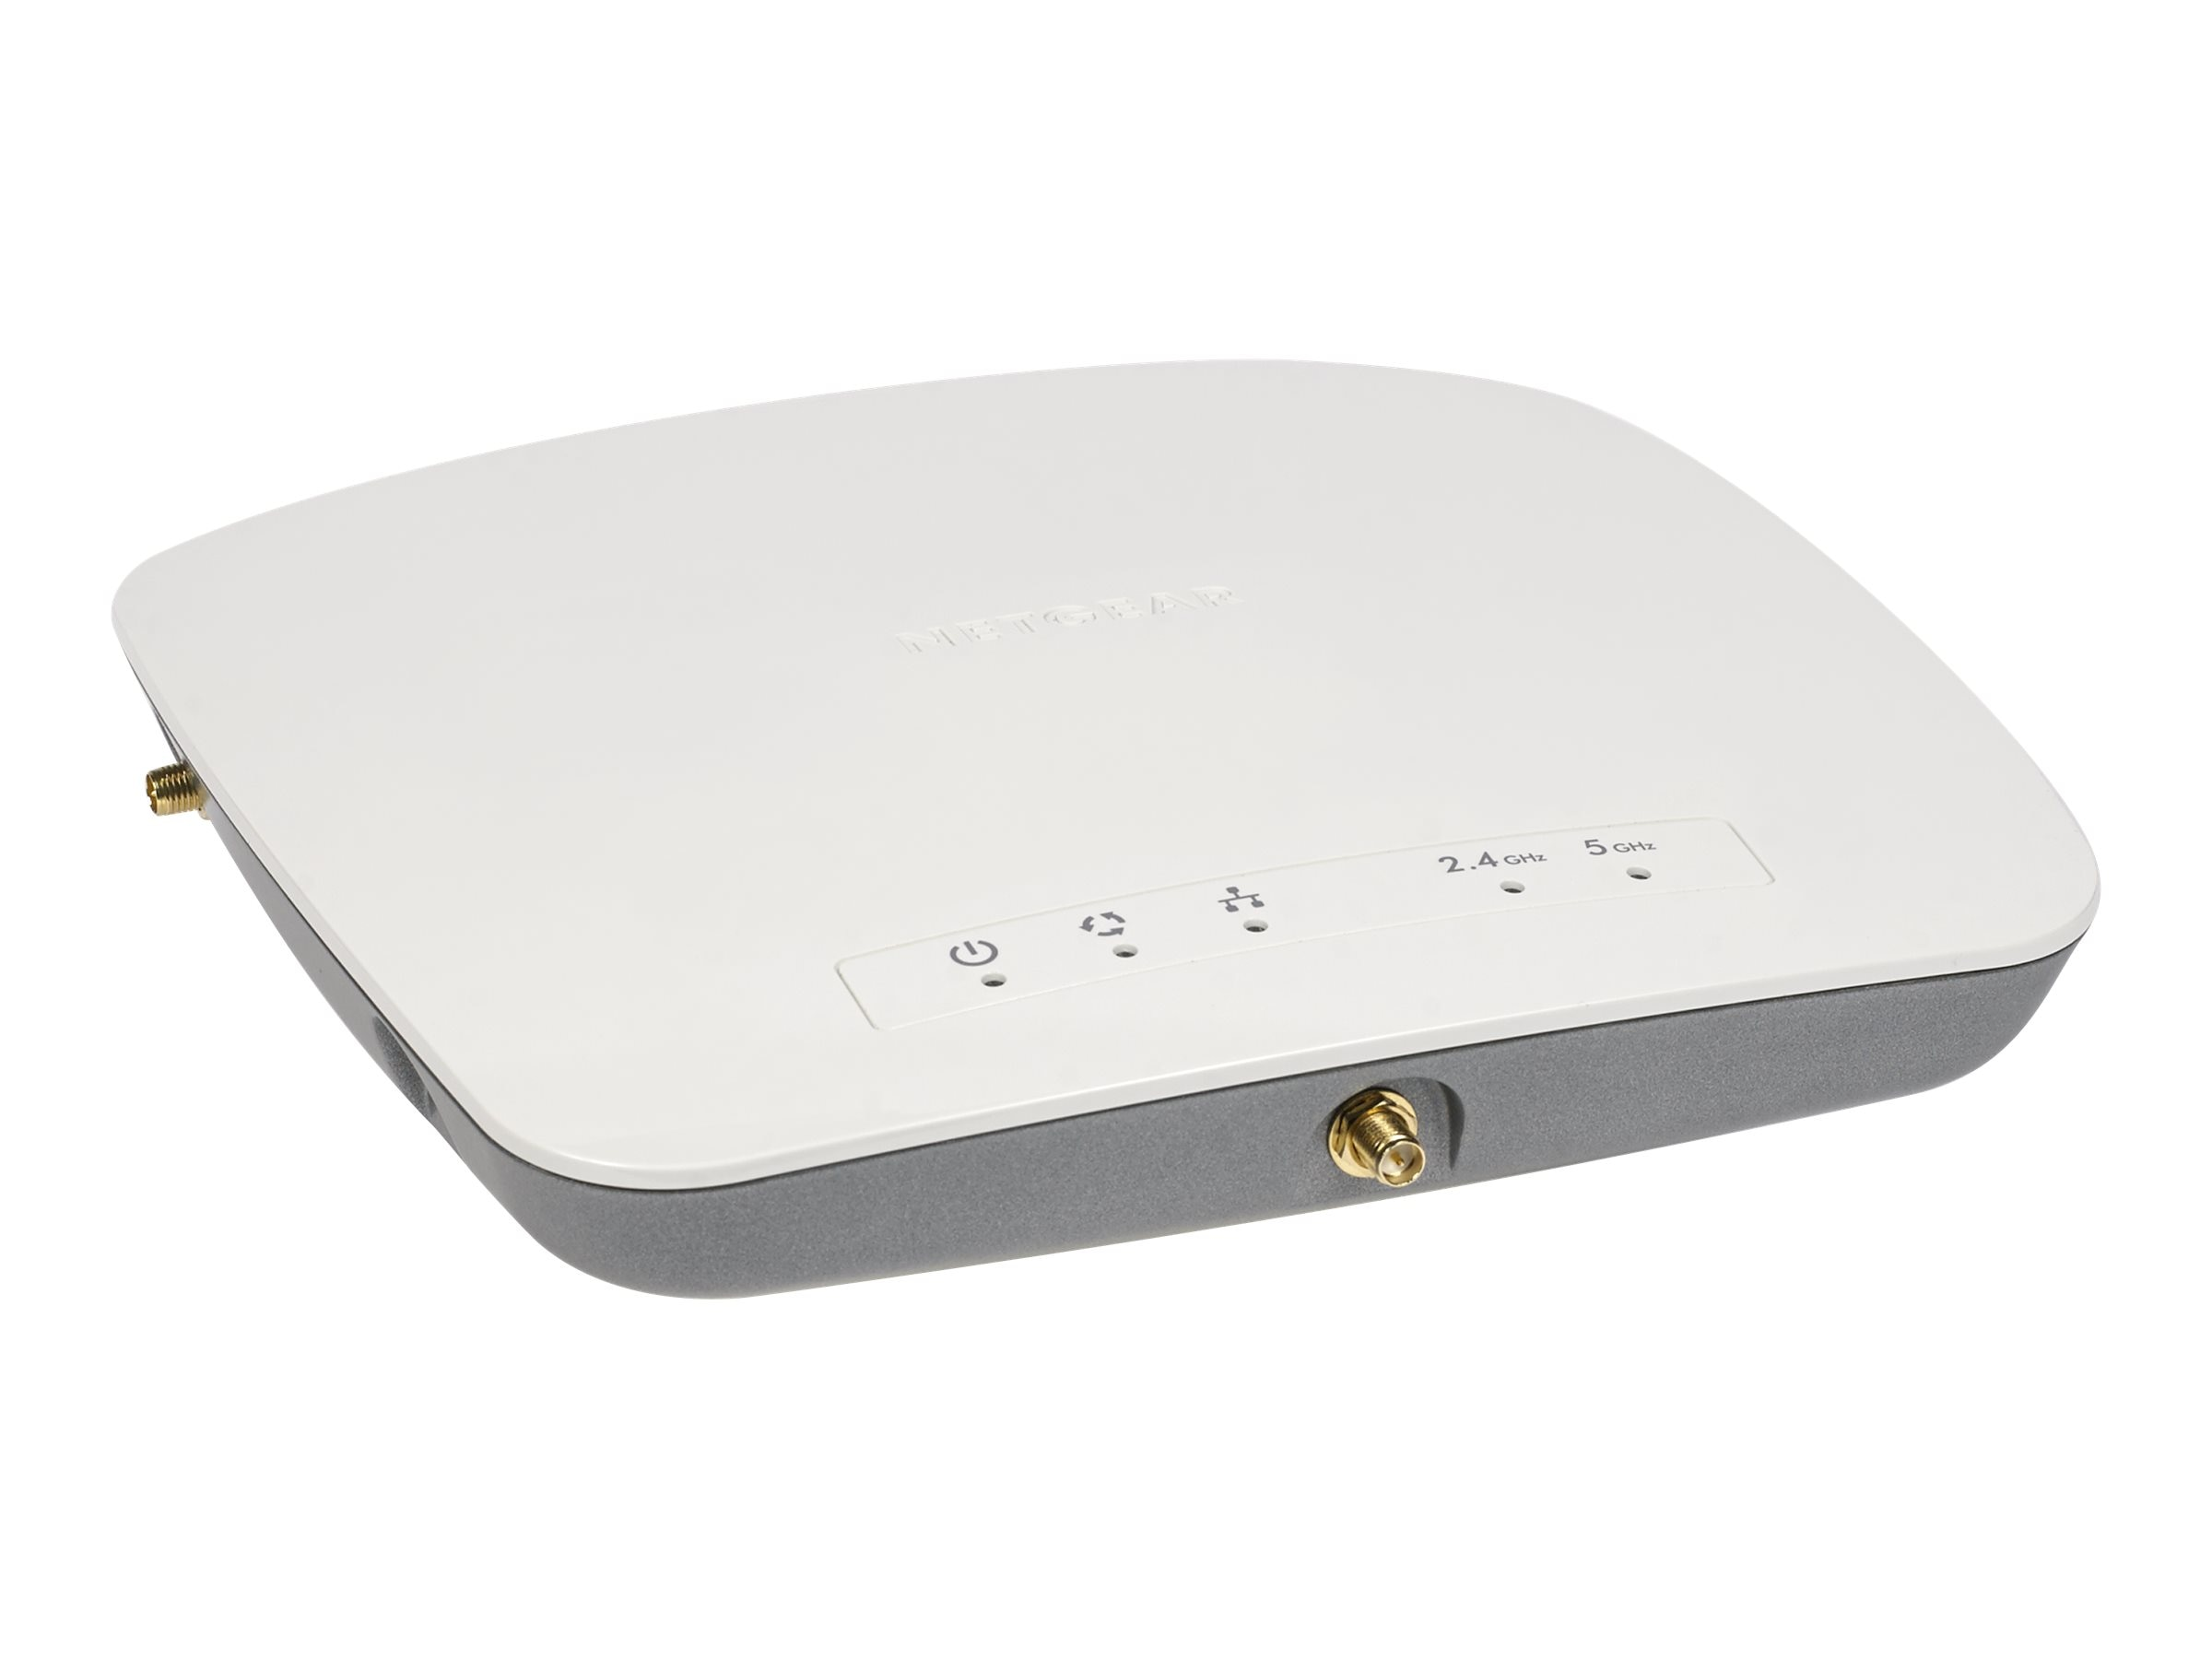 Netgear ProSAFE Business 3 x 3 Dual Band Wireless-AC Access Point, WAC730-100NAS, 30734591, Wireless Access Points & Bridges